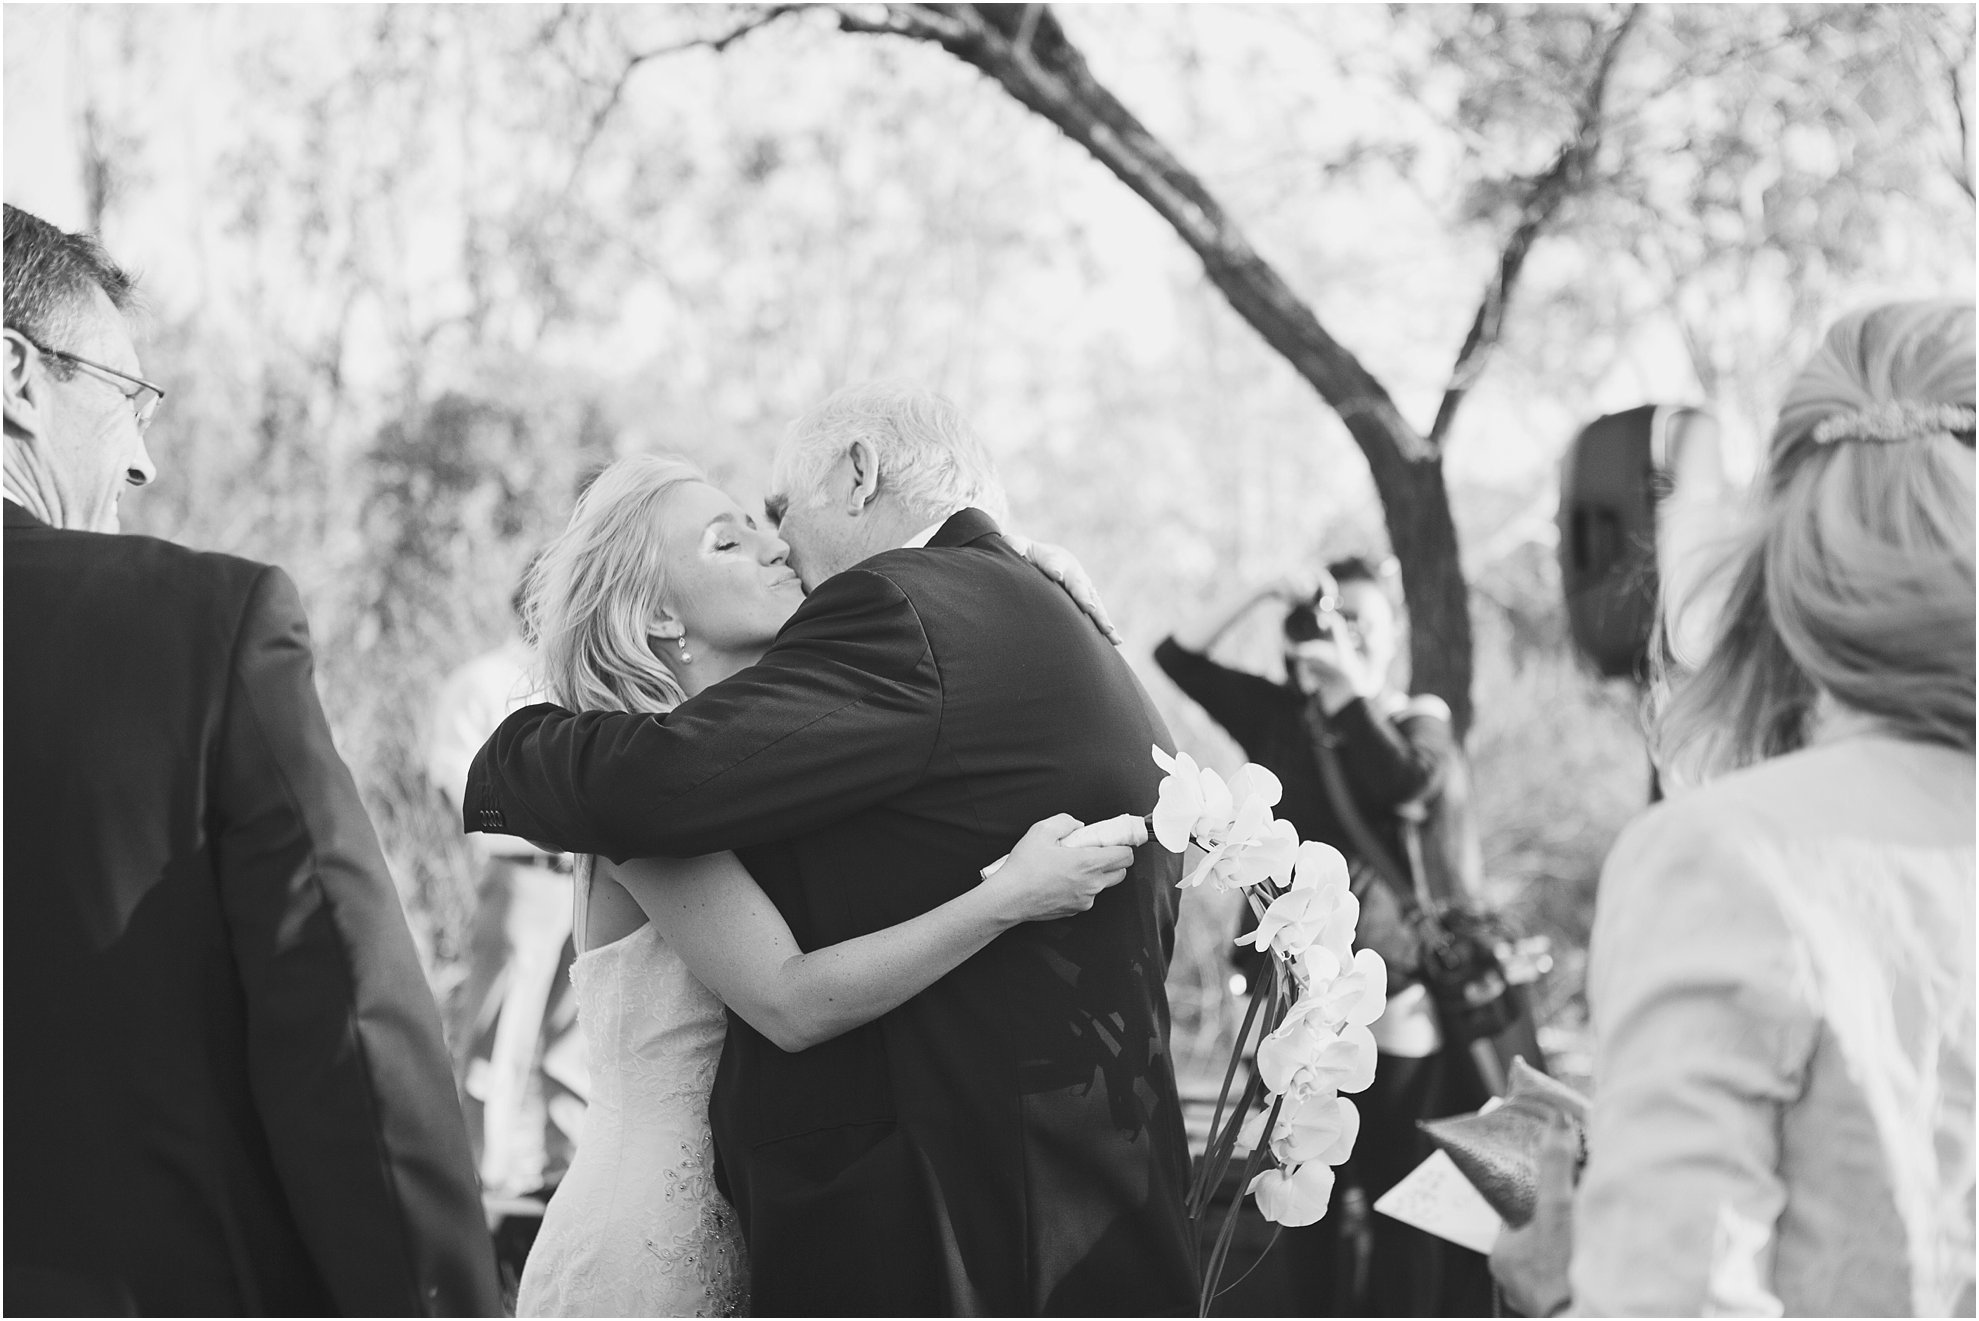 FIONA CLAIR PHOTOGRAPHY Jean & Natalie Swart 01 06 2013_0083